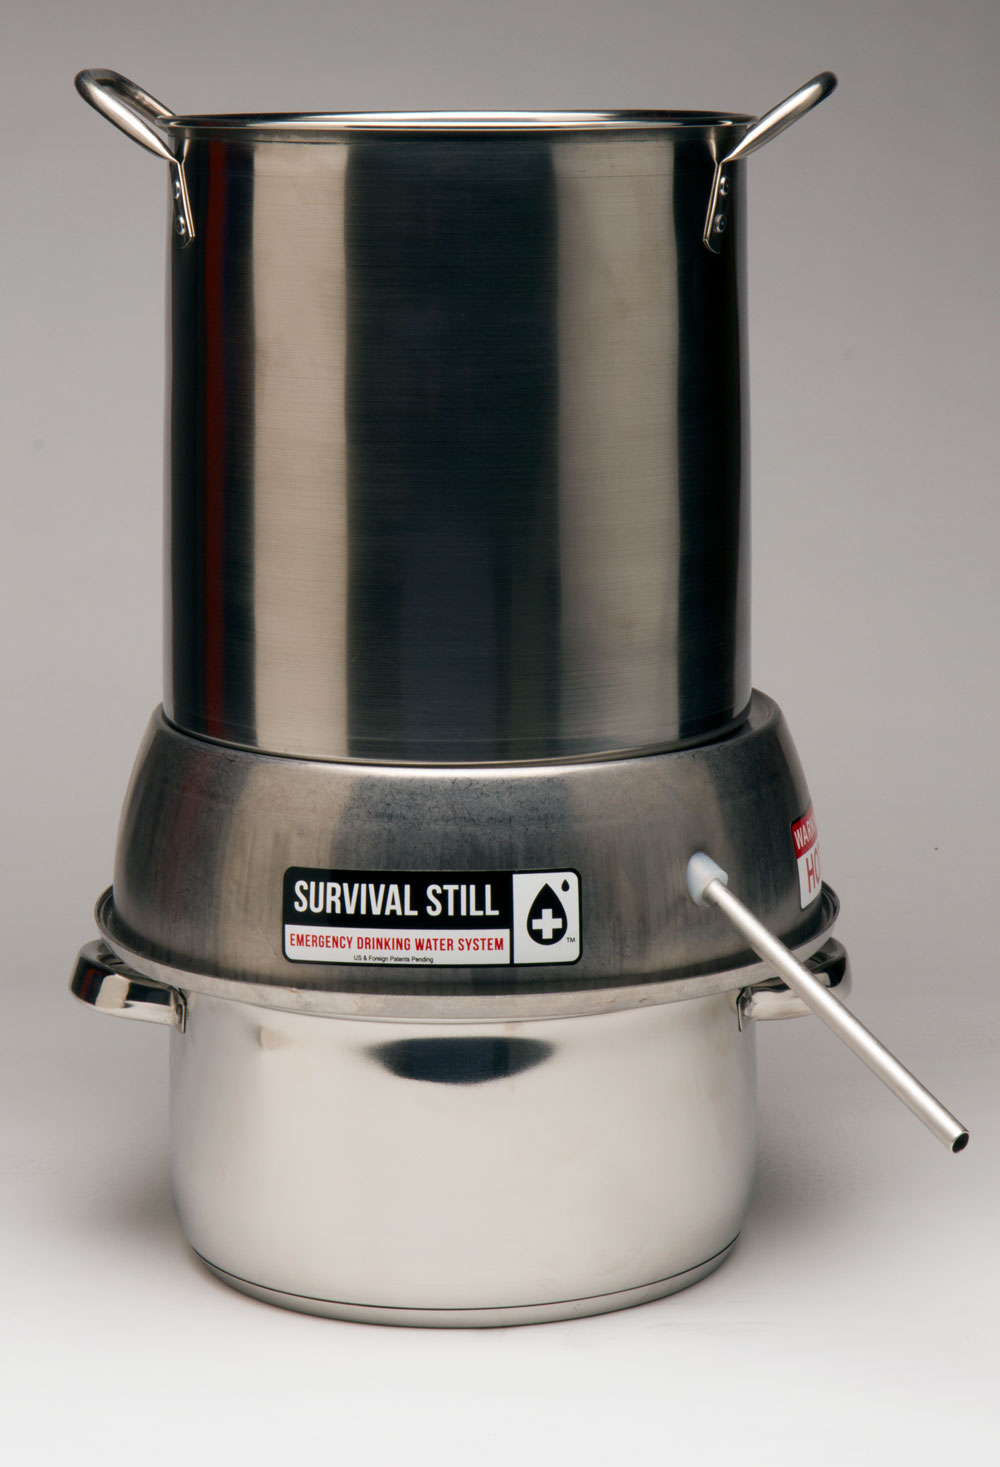 Survival Still Non-Electric Water Purification System with Pots by Survival Still